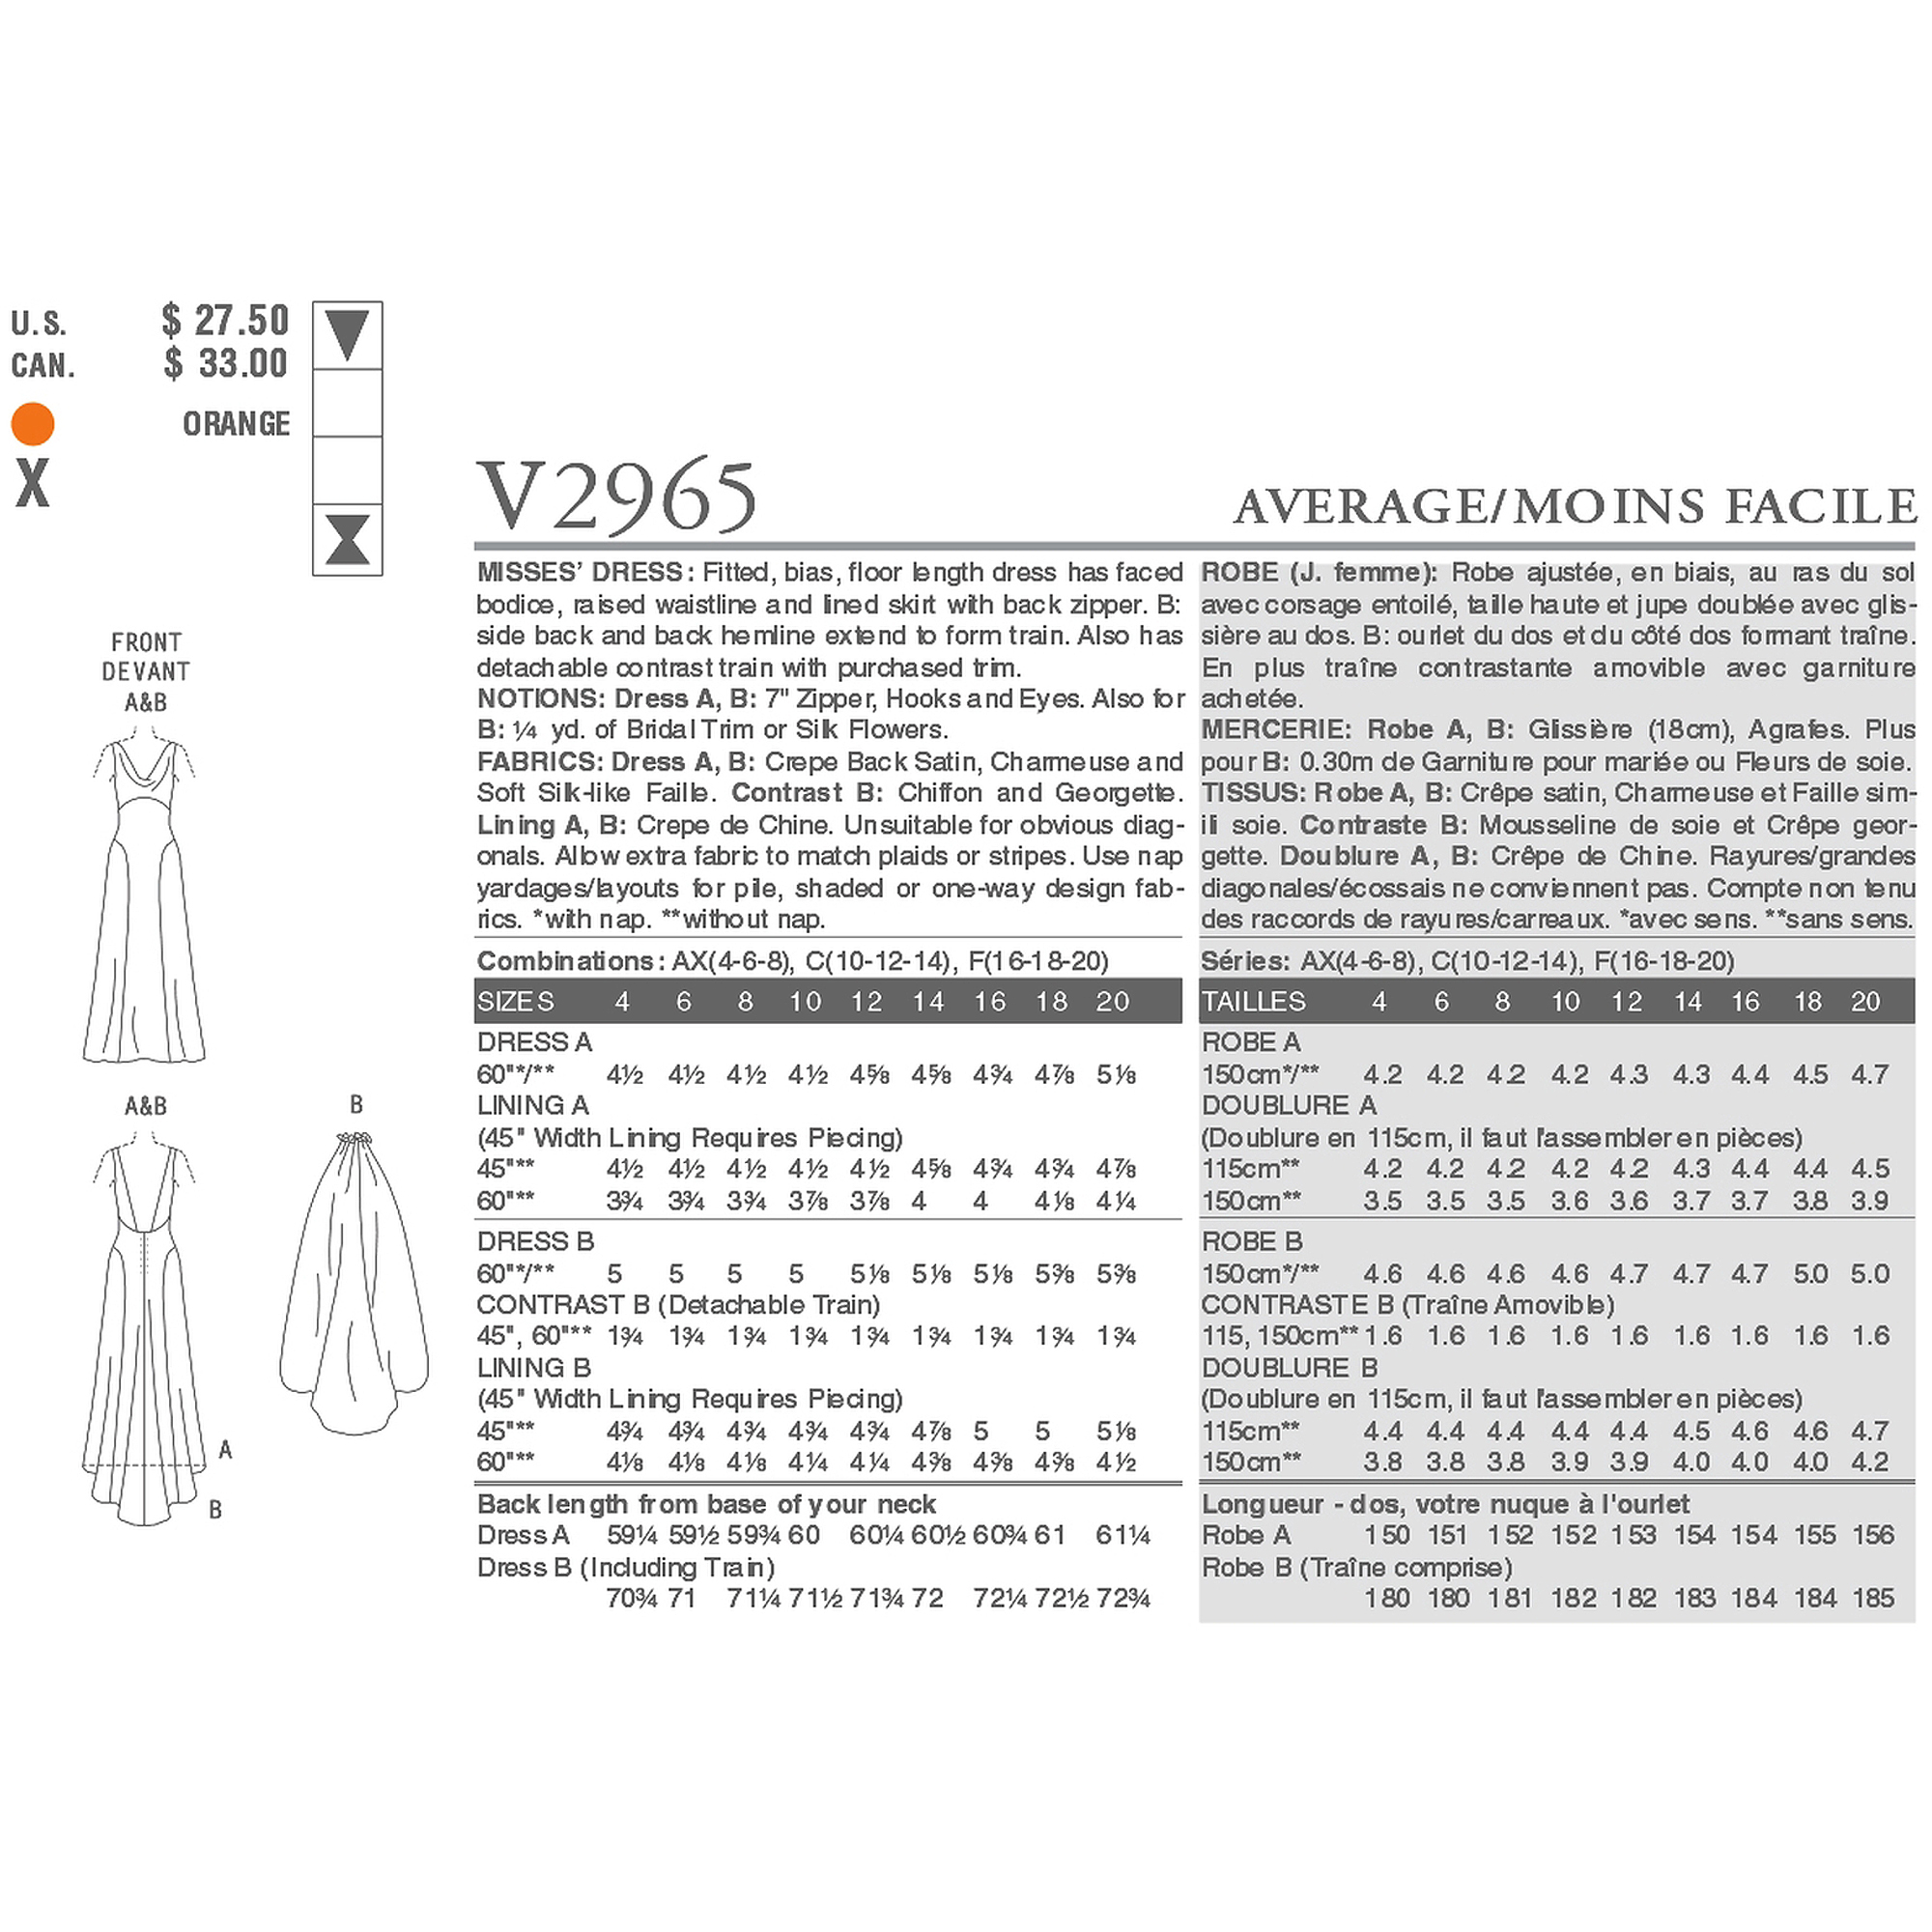 Vogue Pattern Misses' Dress, F (16, 18, 20)